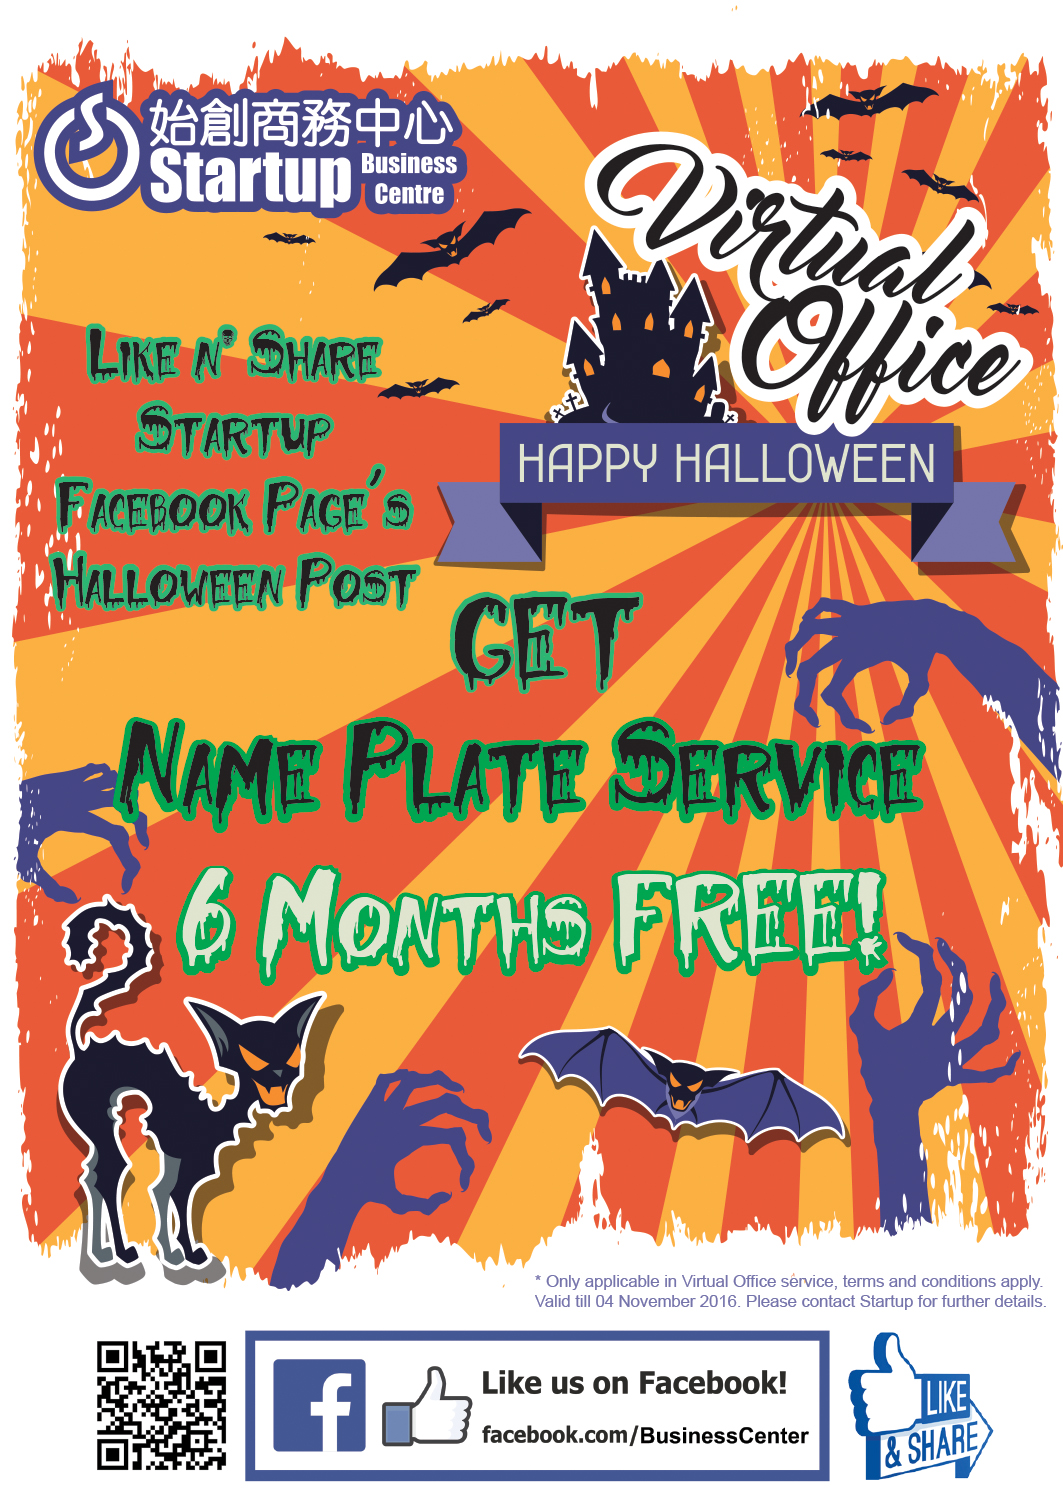 Startup Business Centre-Halloween Promotion